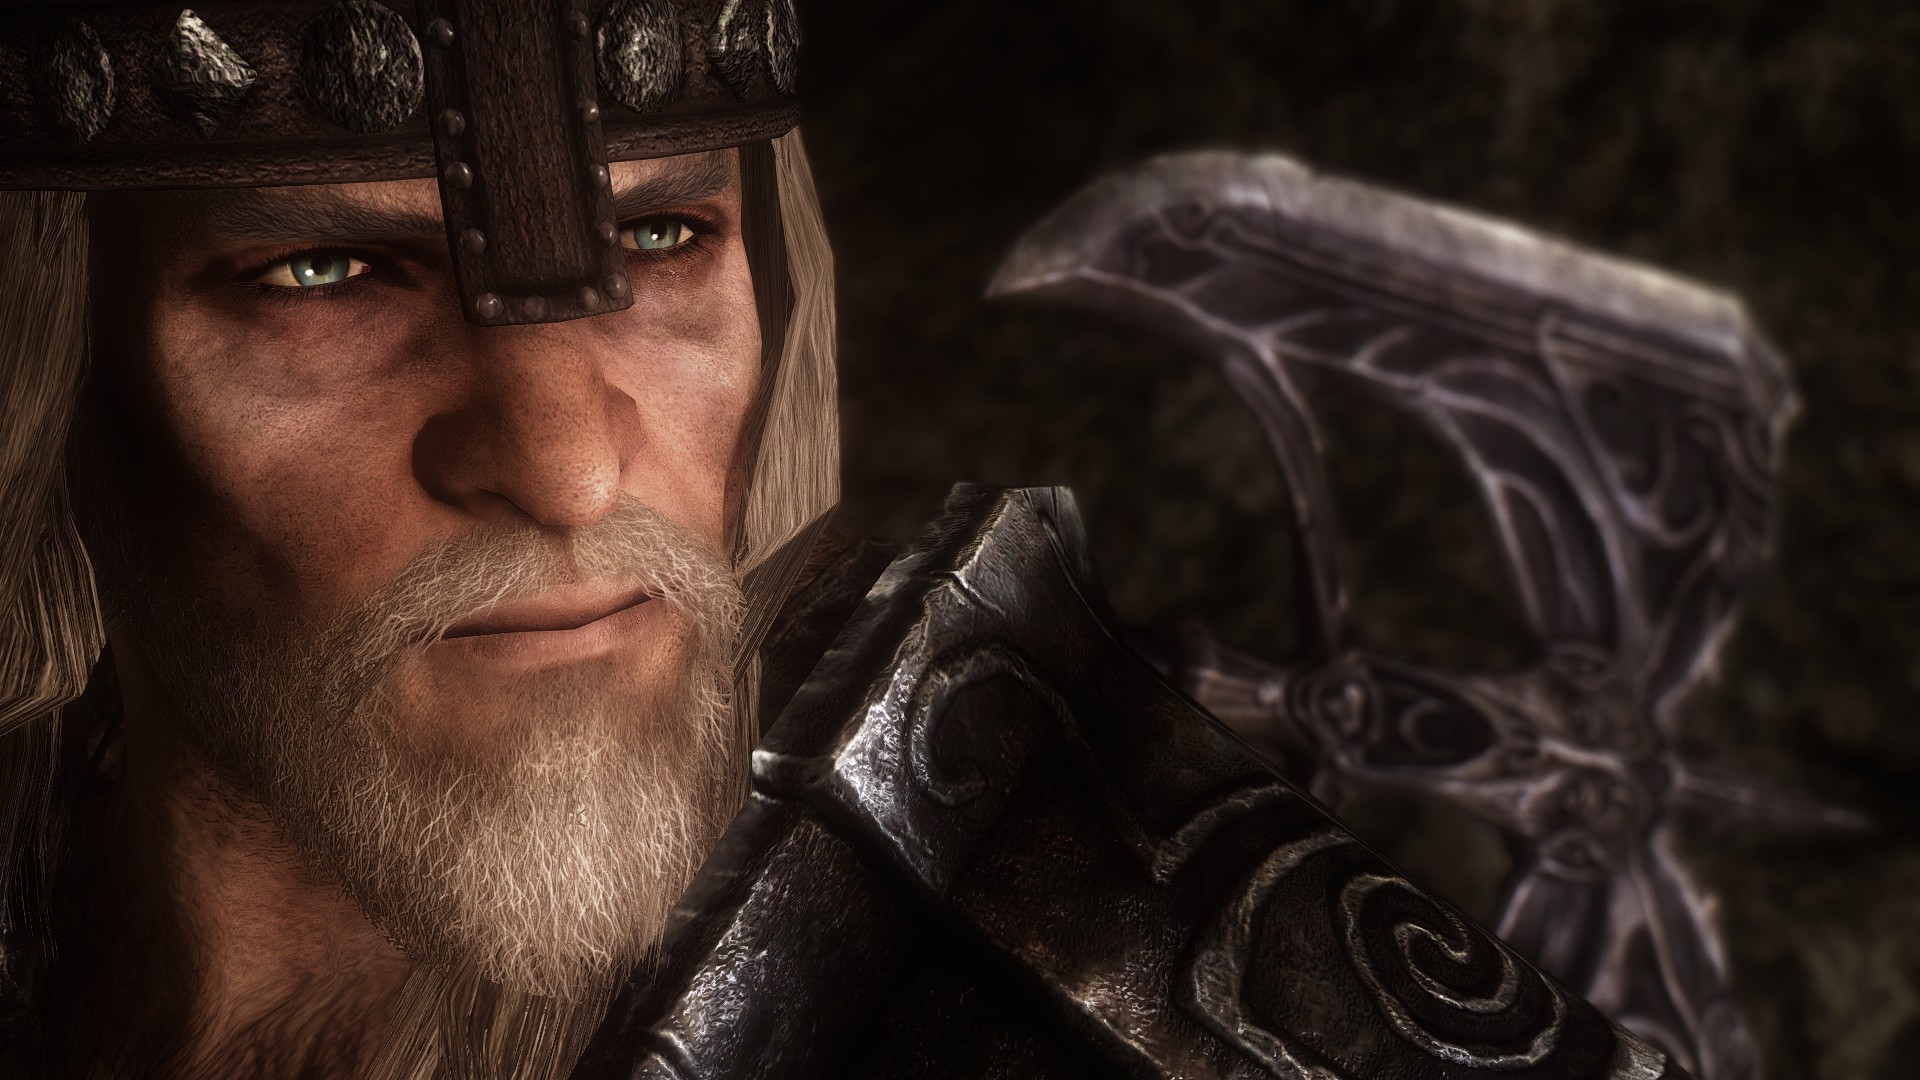 'Faces of Skyrim' celebrates a startlingly beautiful game